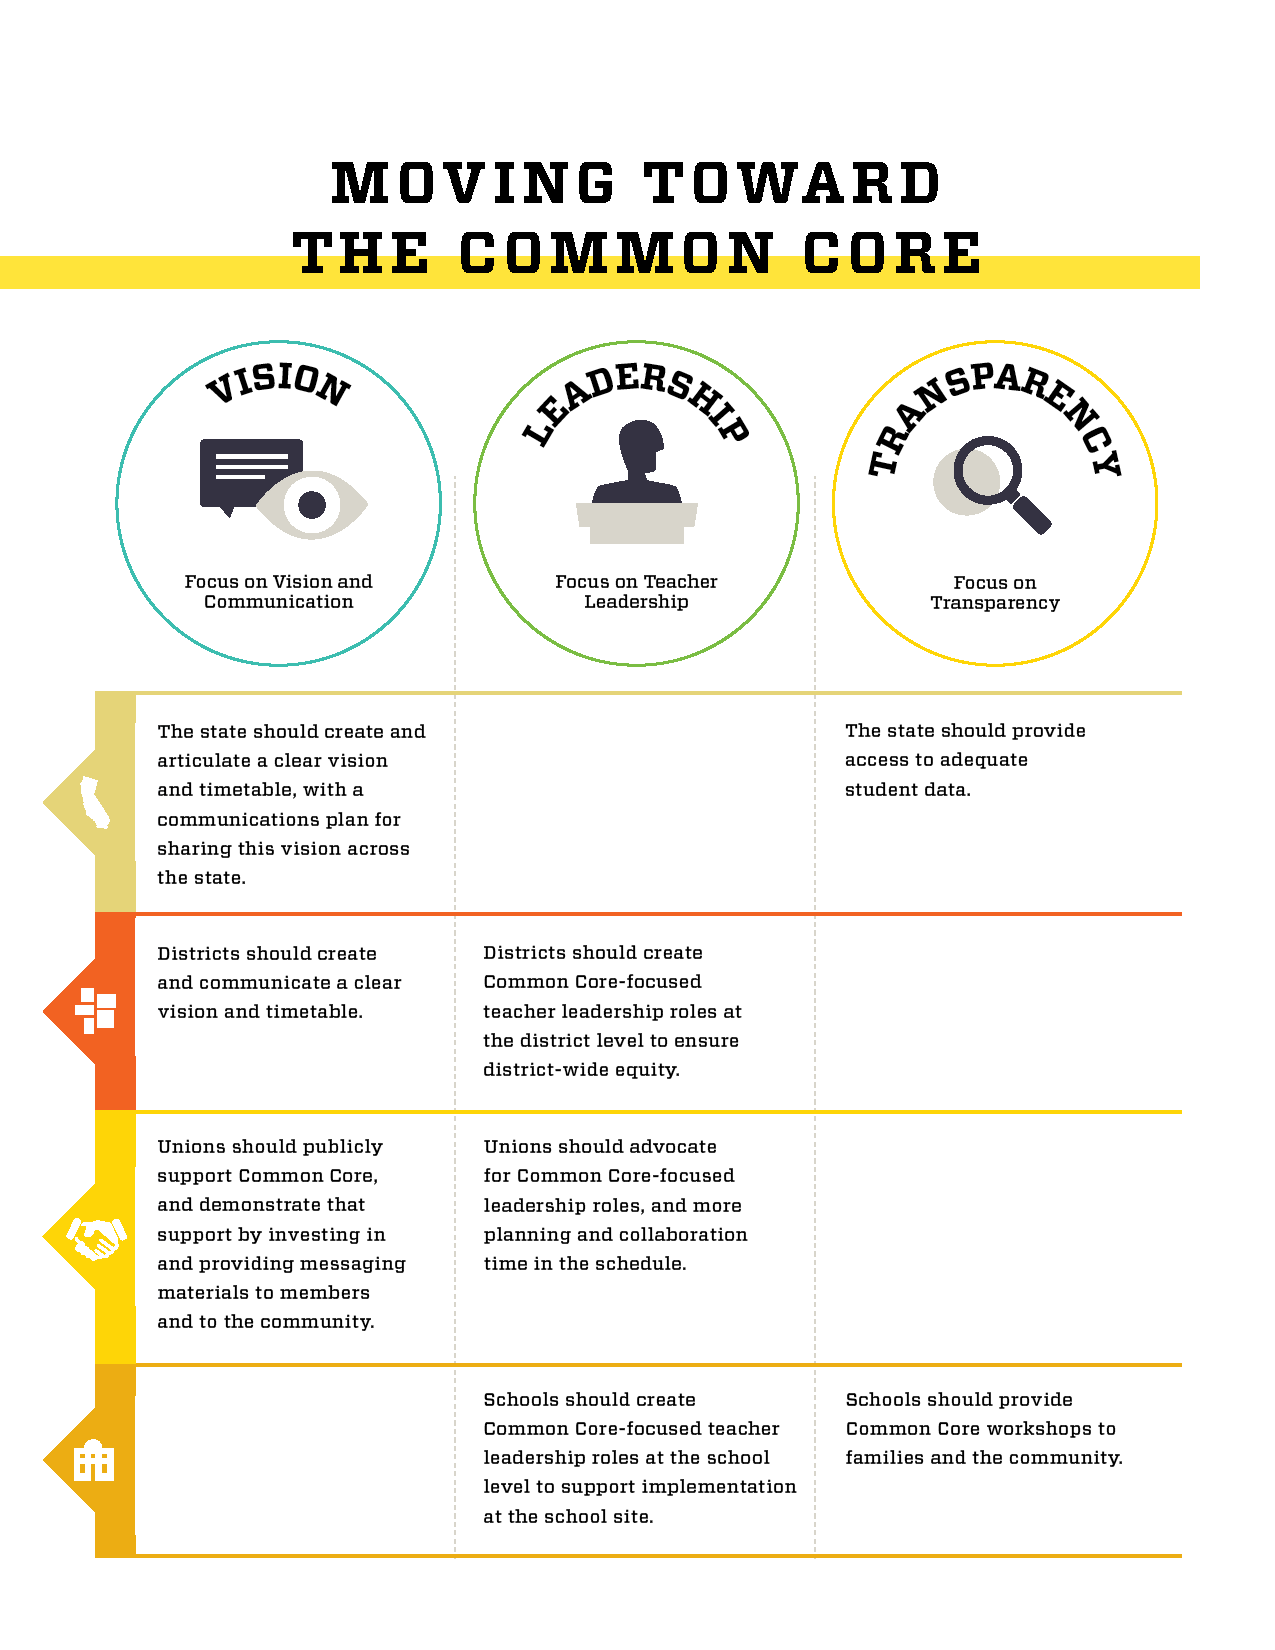 Moving toward the Common Core